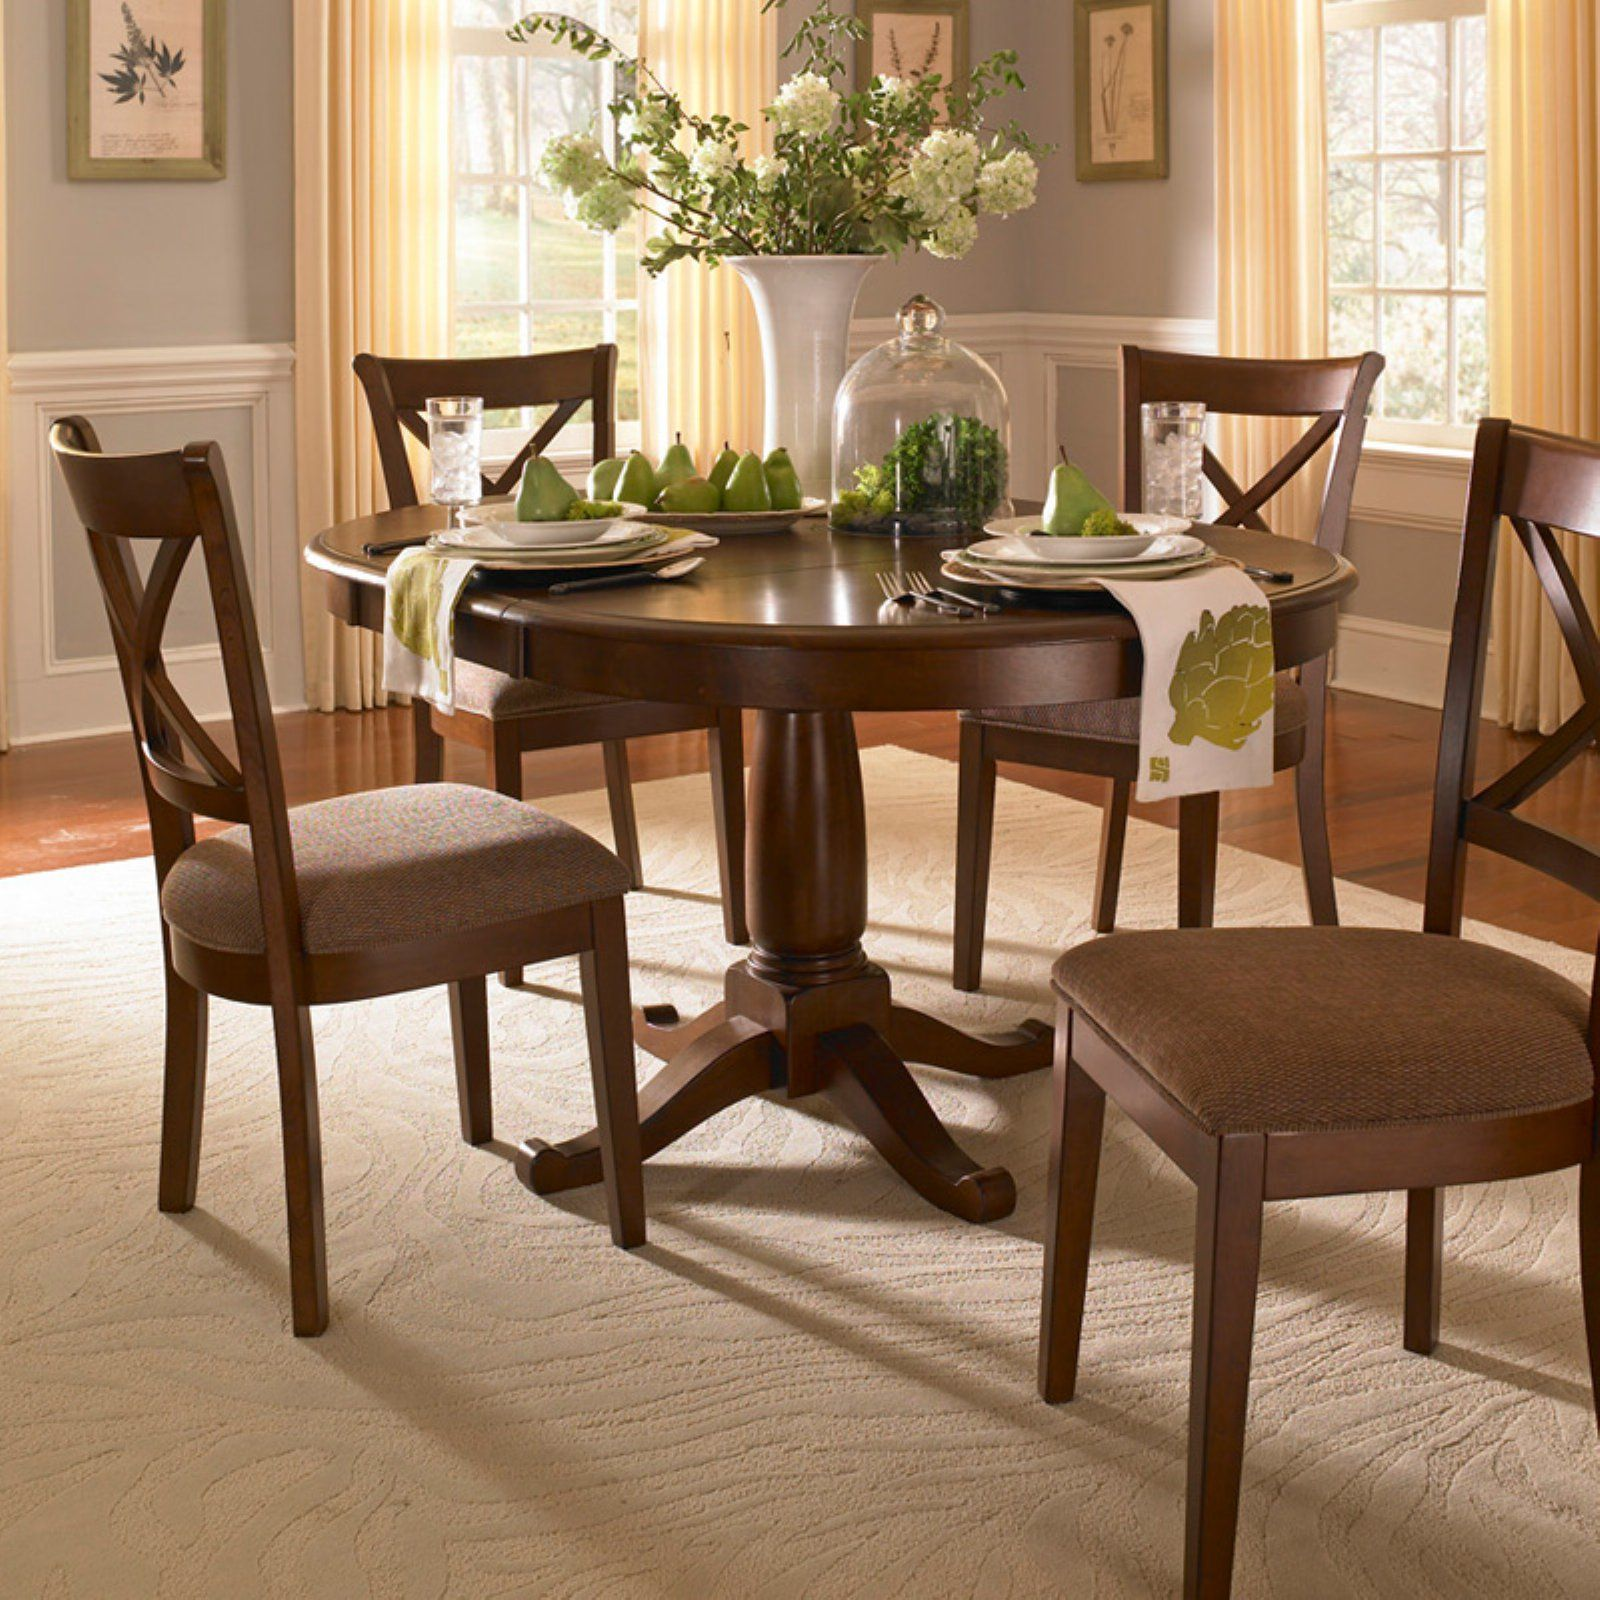 A America Desoto Oval Dining Table With Leaf In 2020 Cheap